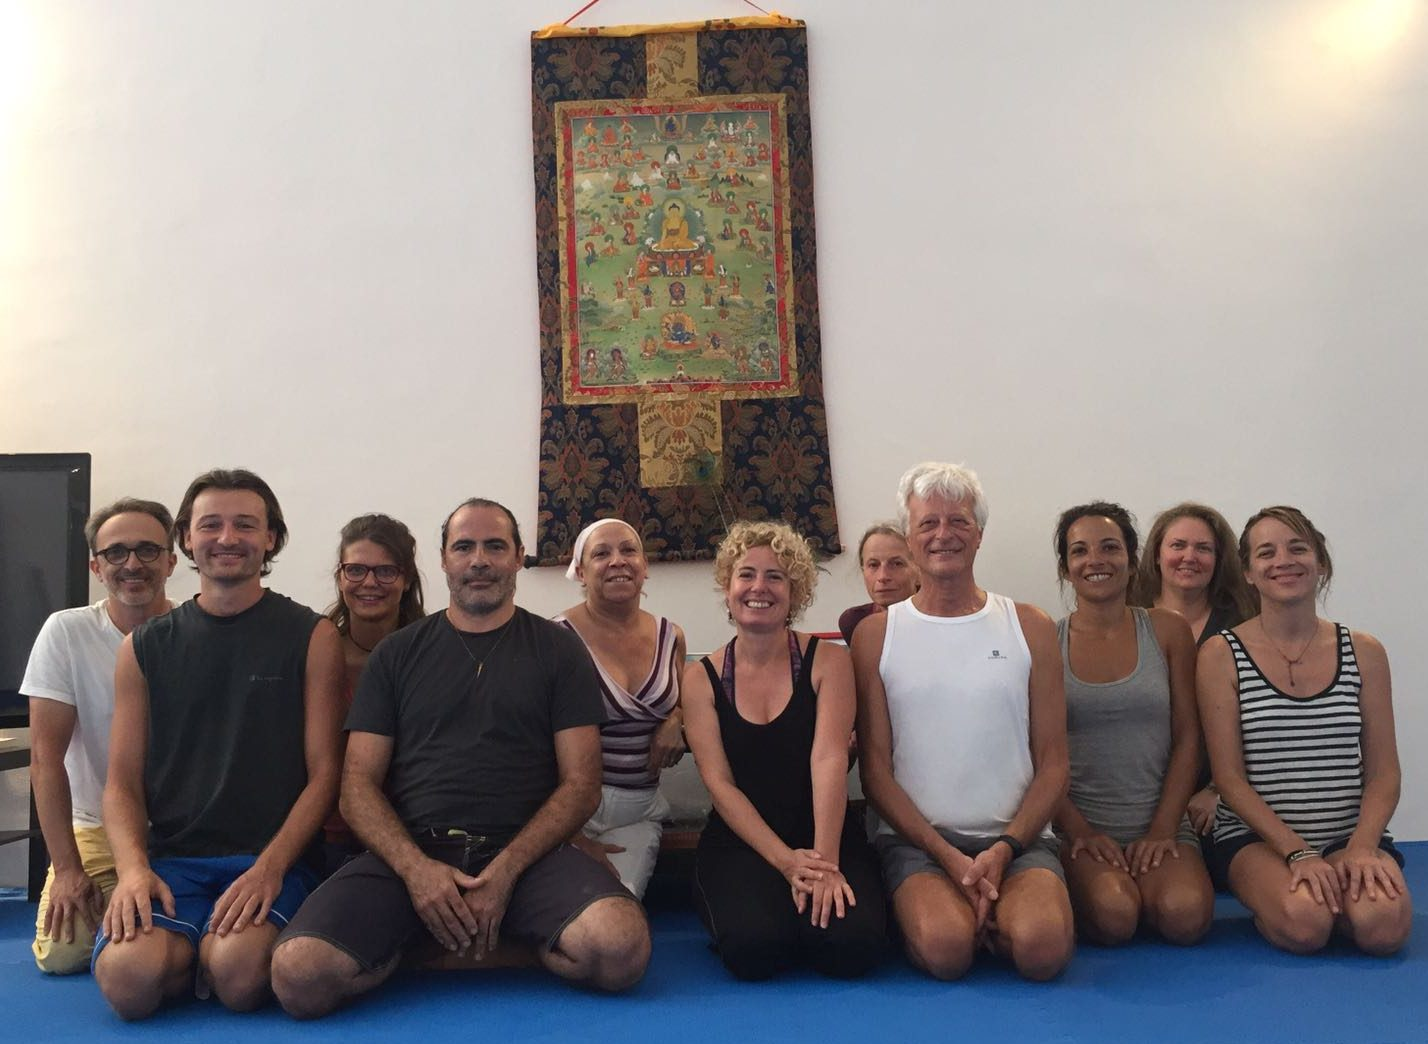 Beginners Yantra Yoga/Eight Movements with Alessandra Policreti on August 19-20, 2017 at Dzamling Gar